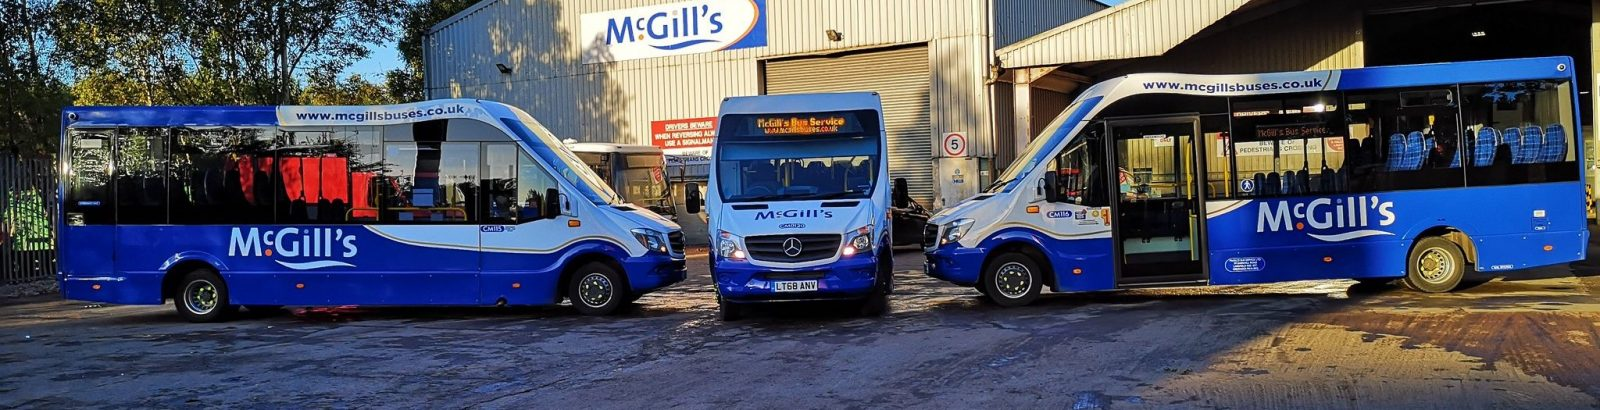 McGill's Buses launch with Passenger